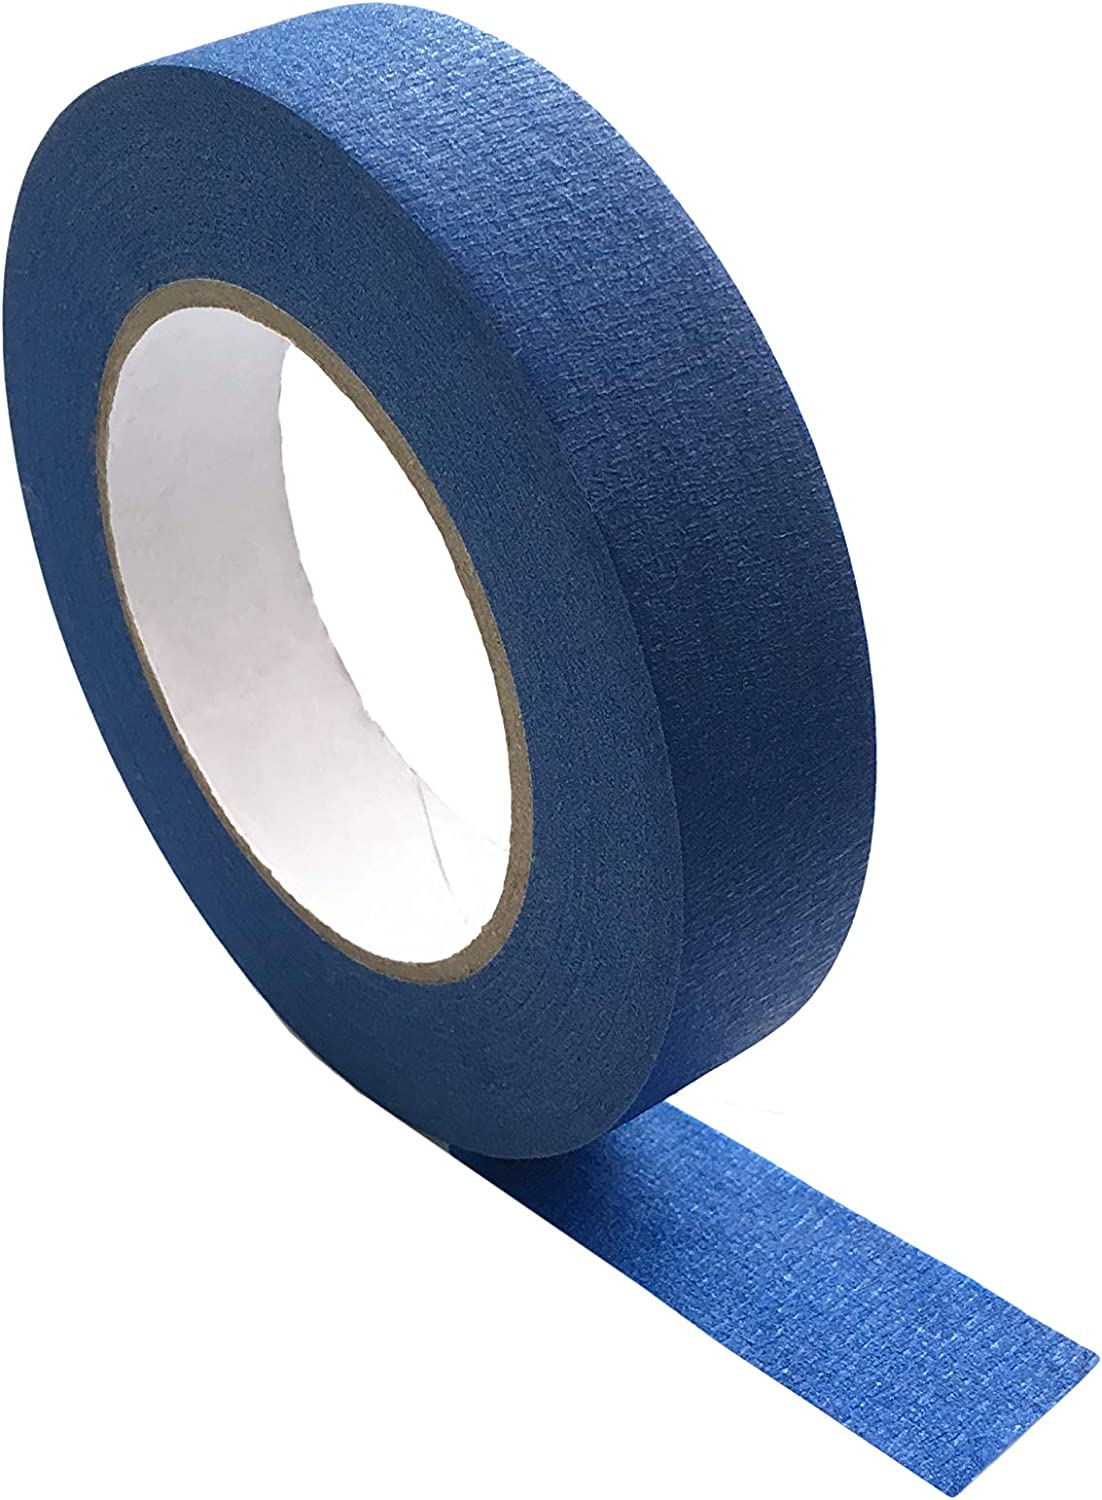 Blue Washi Tape Masking Tape 15mm wide x 5 Meters Roll No.10640